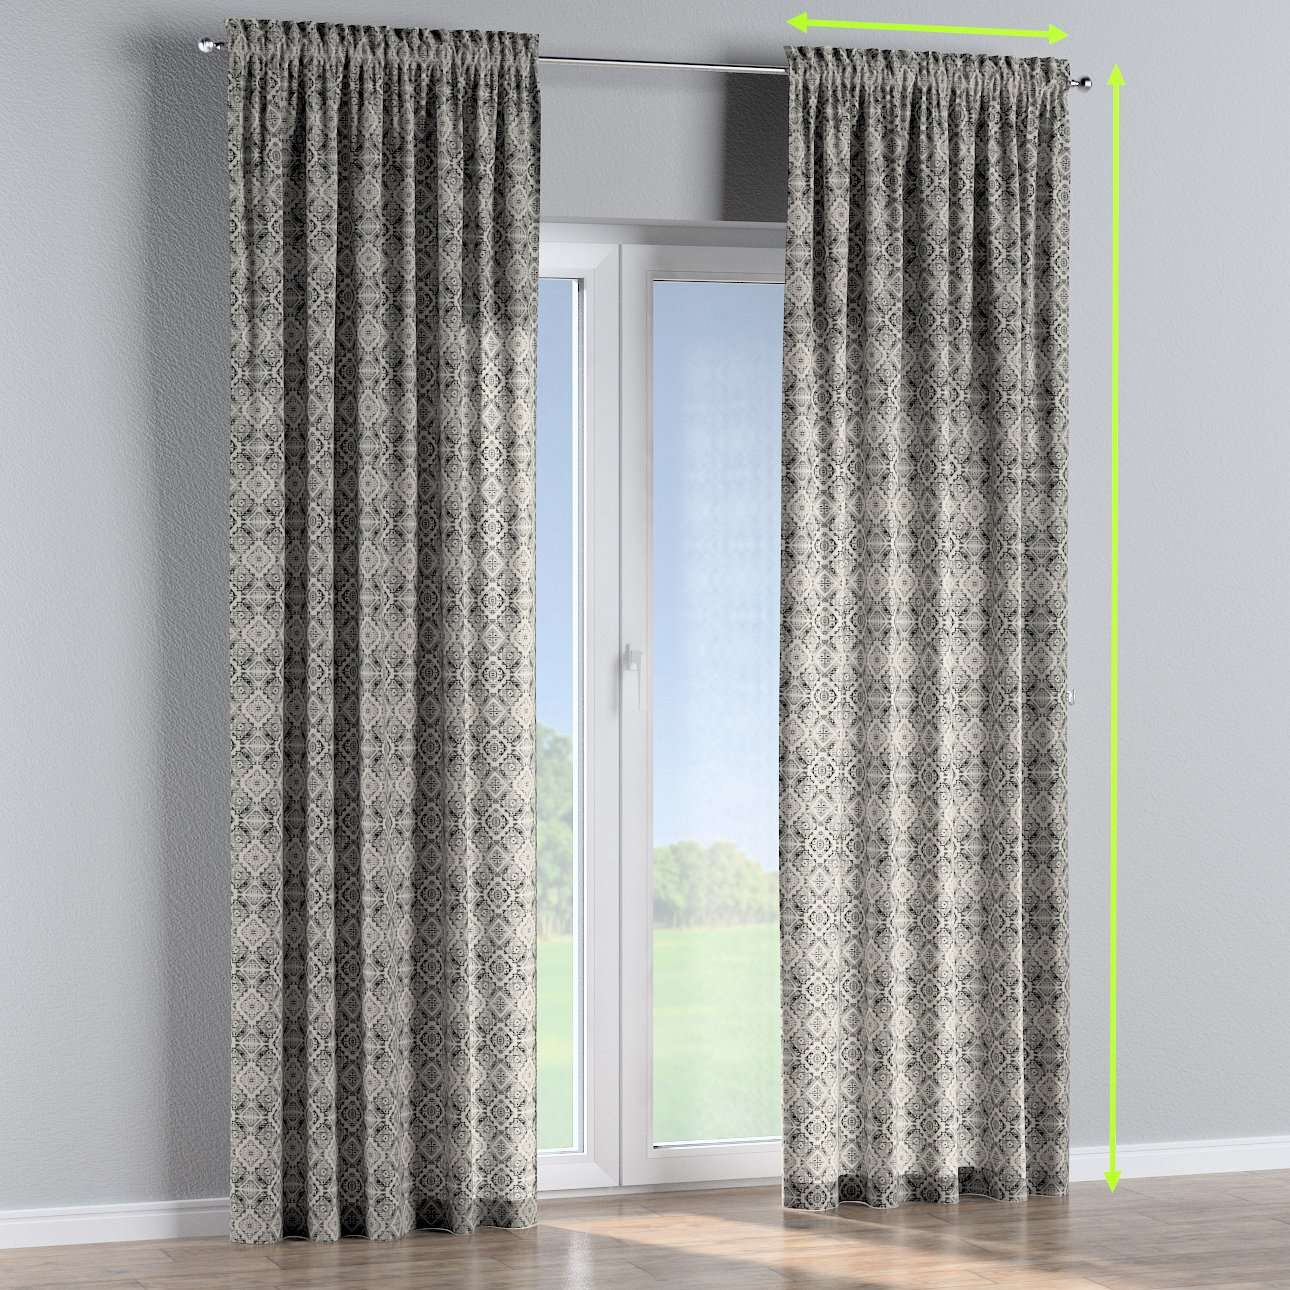 Slot and frill lined curtains in collection Comic Book & Geo Prints, fabric: 141-18